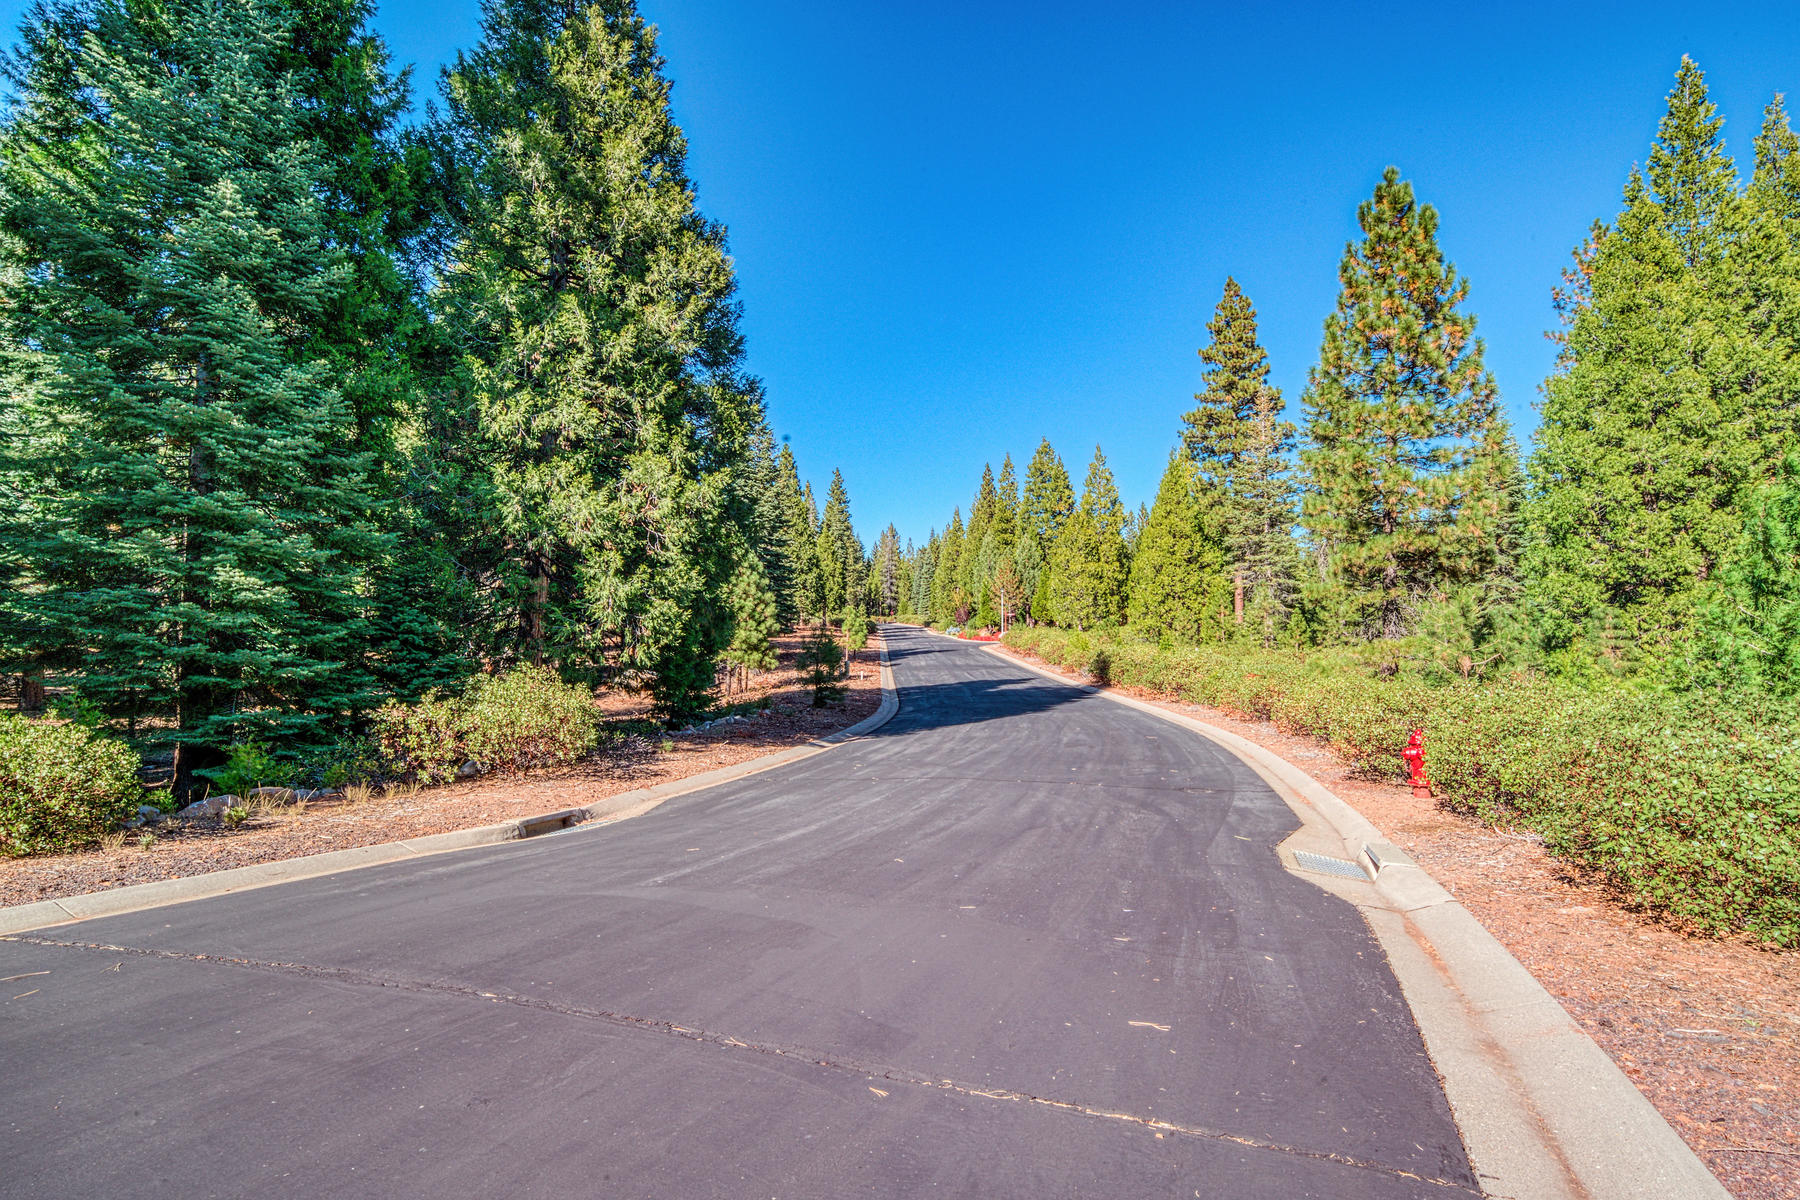 Additional photo for property listing at 51 Foxwood Drive Lake Almanor California 96137 51 Foxwood Drive Lake Almanor, California 96137 United States